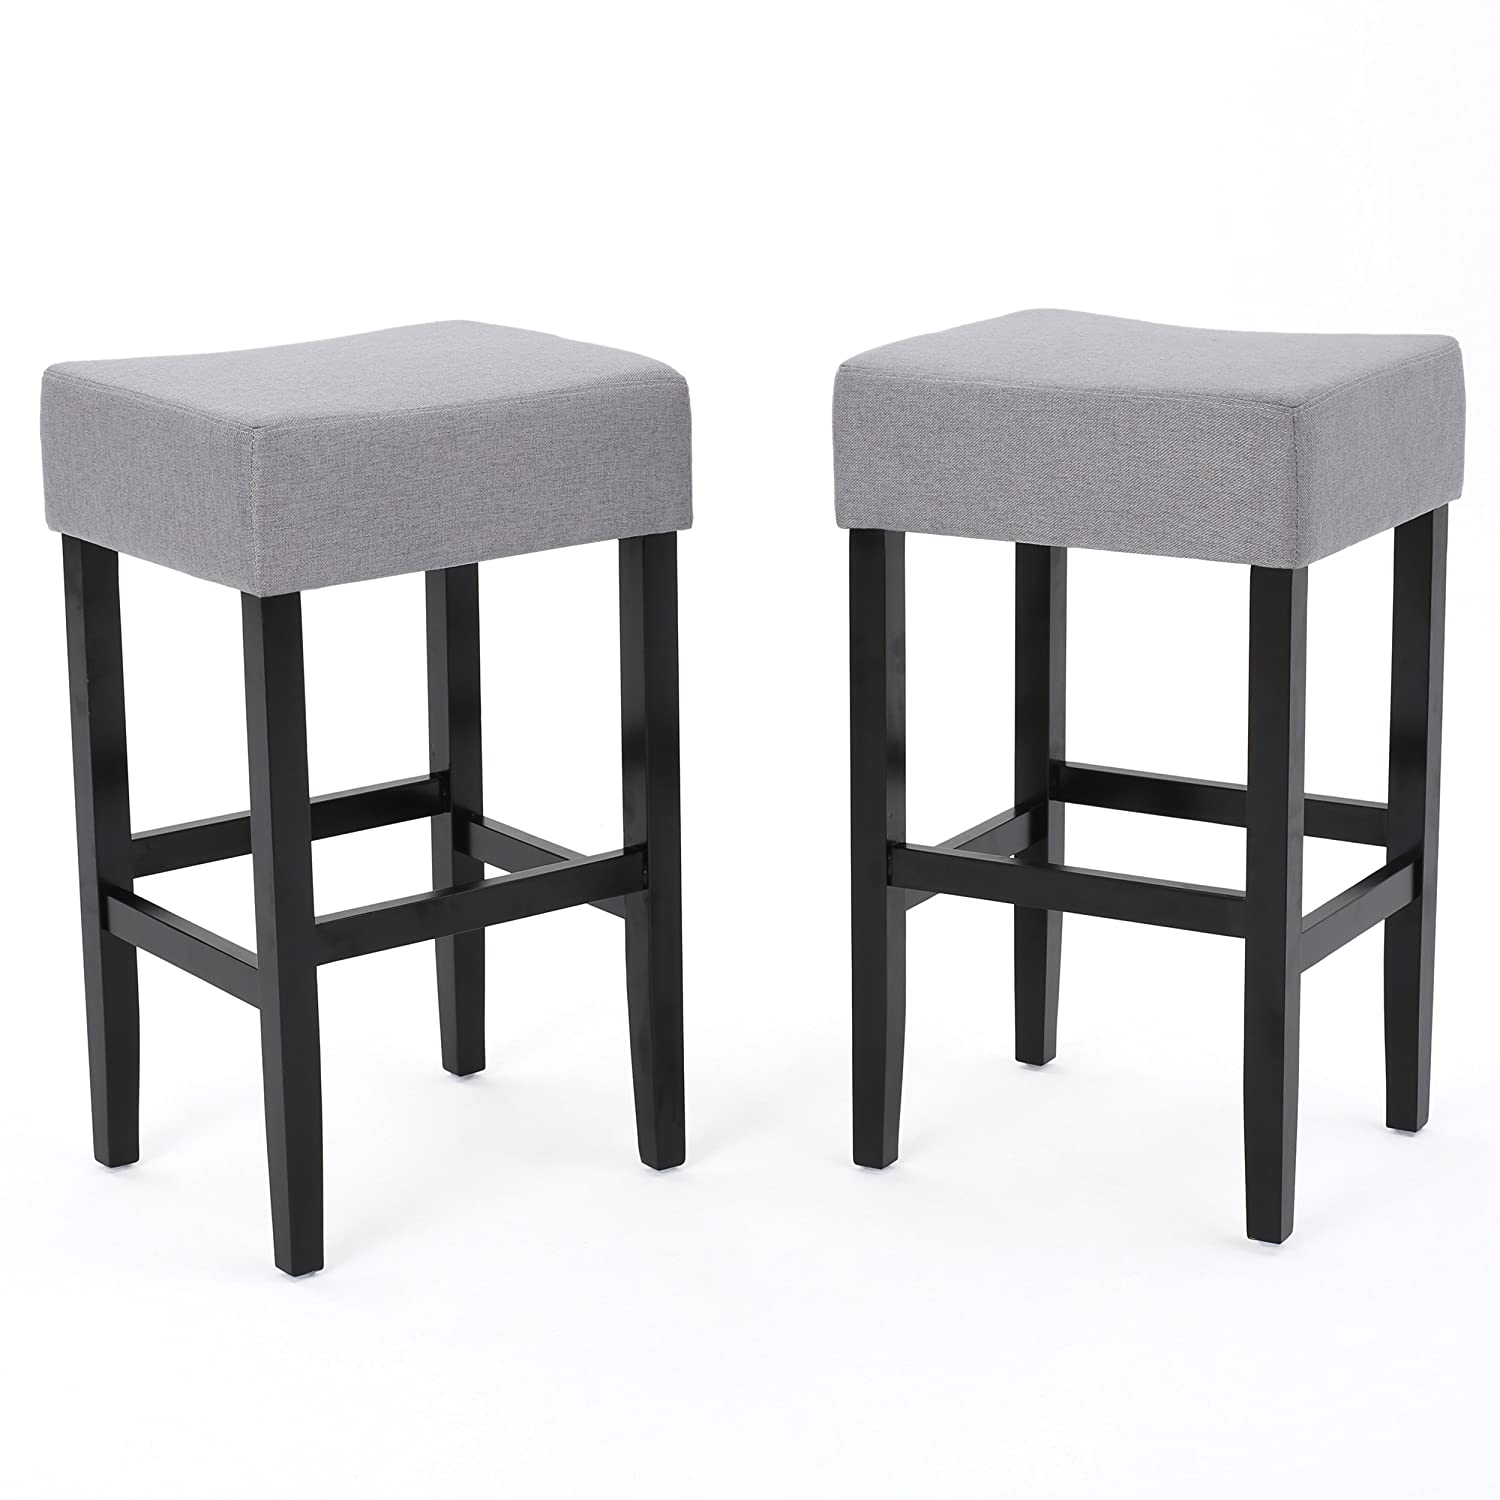 Stupendous Delta Light Grey Fabric Backless Barstools Set Of 2 Andrewgaddart Wooden Chair Designs For Living Room Andrewgaddartcom